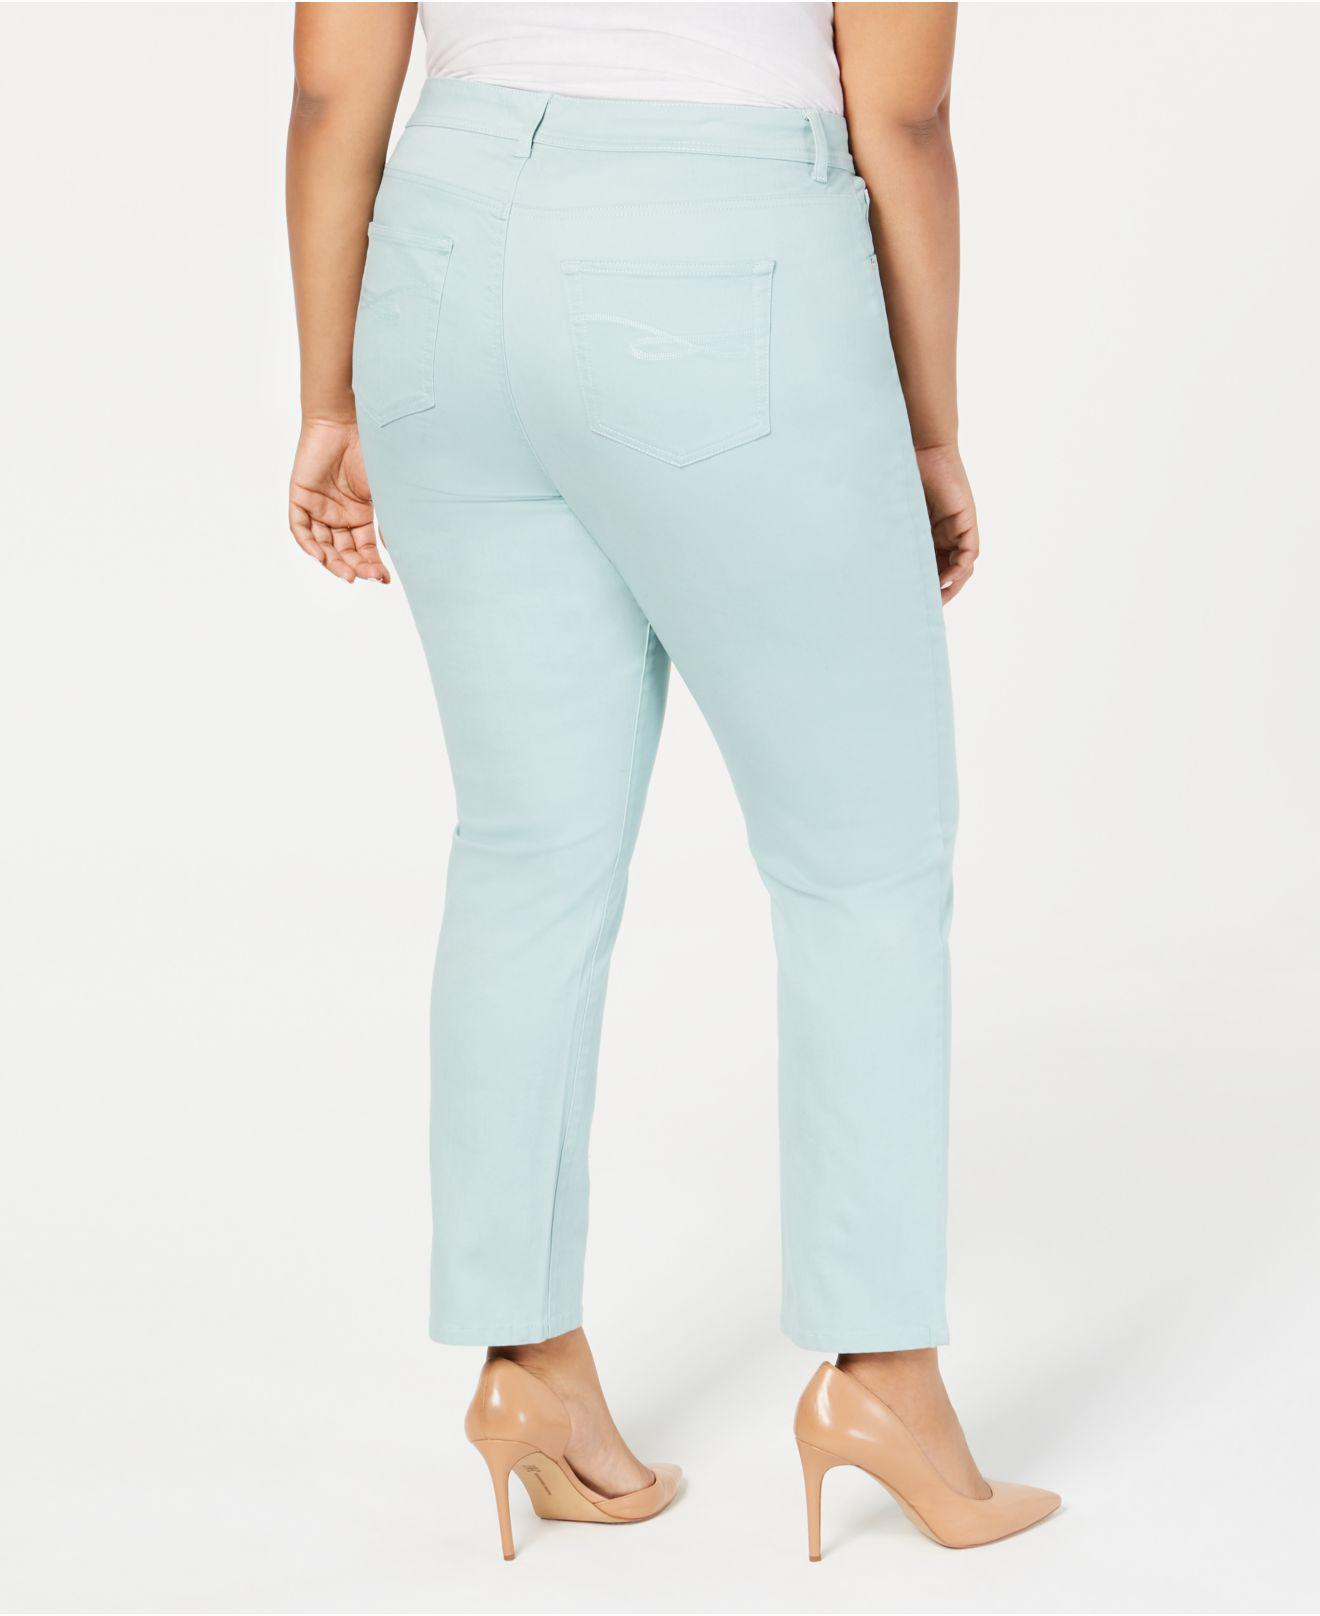 Green Mint skinny jeans macys pictures